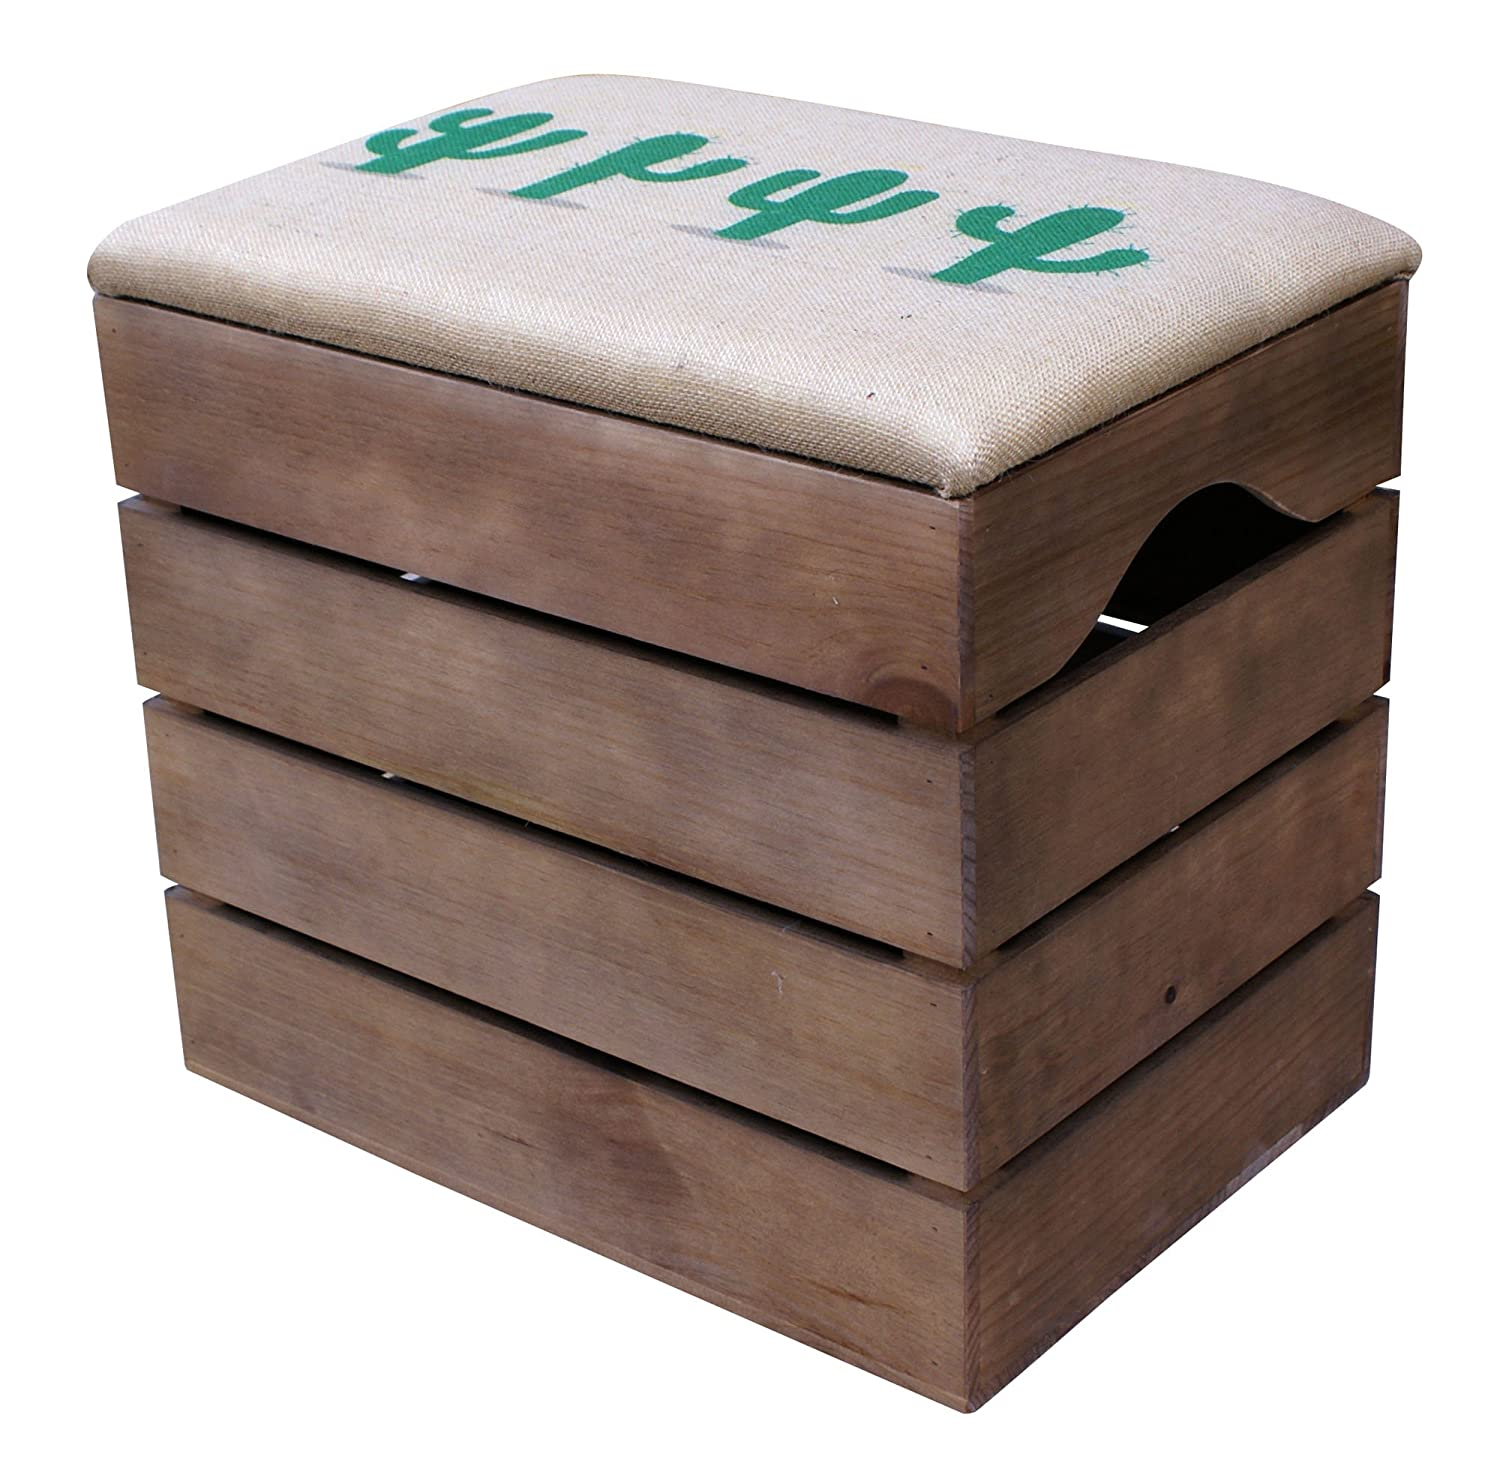 LIZA LINE PREMIUM WOODEN STORAGE STOOL BENCH (WALNUT BROWN), for Shoes. Organiser, Pouffe, Toy Box Chest. Vintage Style with Soft Seat Cushion. Solid Nordic Wood - 50 x 45 x 36 cm (Black Cactus)